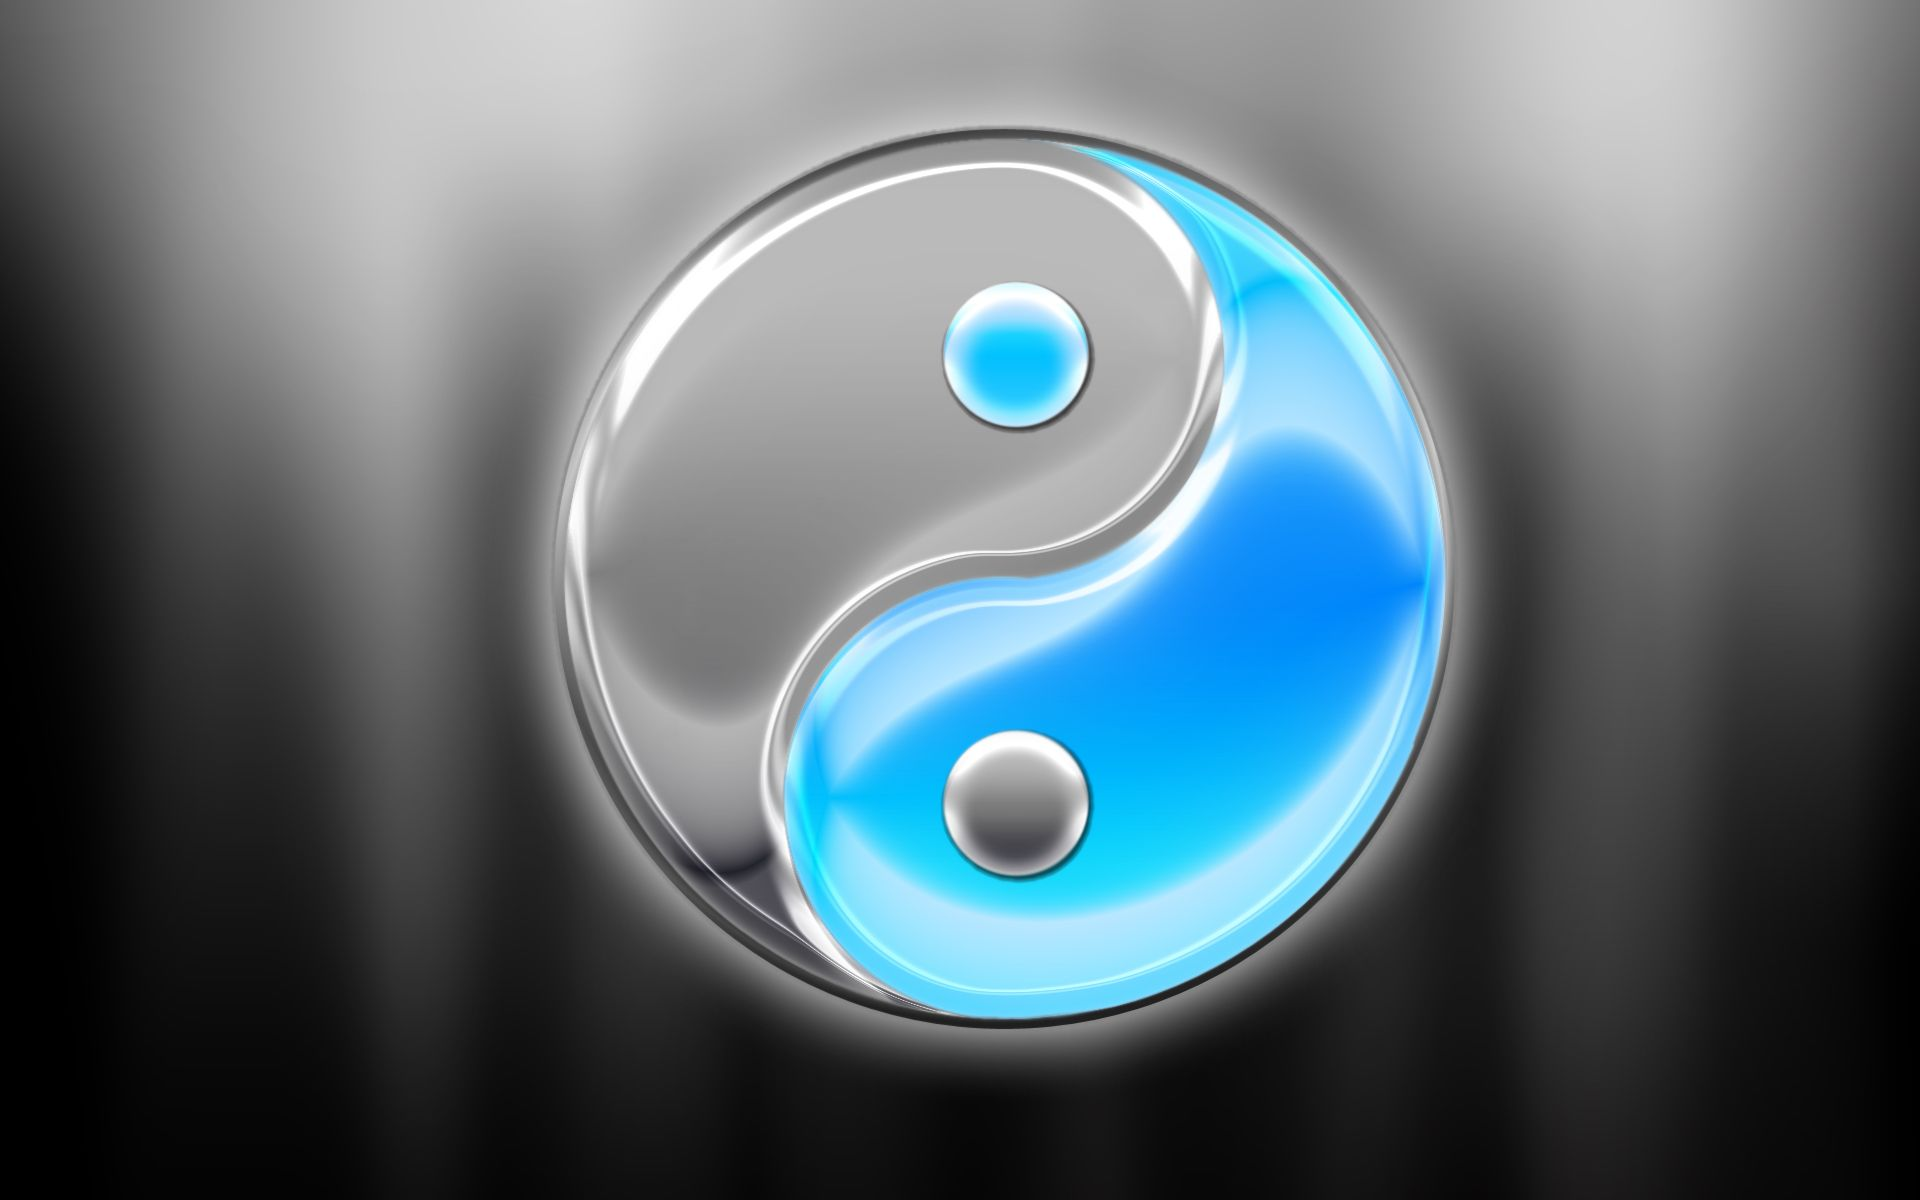 Dragon-Yin-Yang-wallpaper-wpc9004547